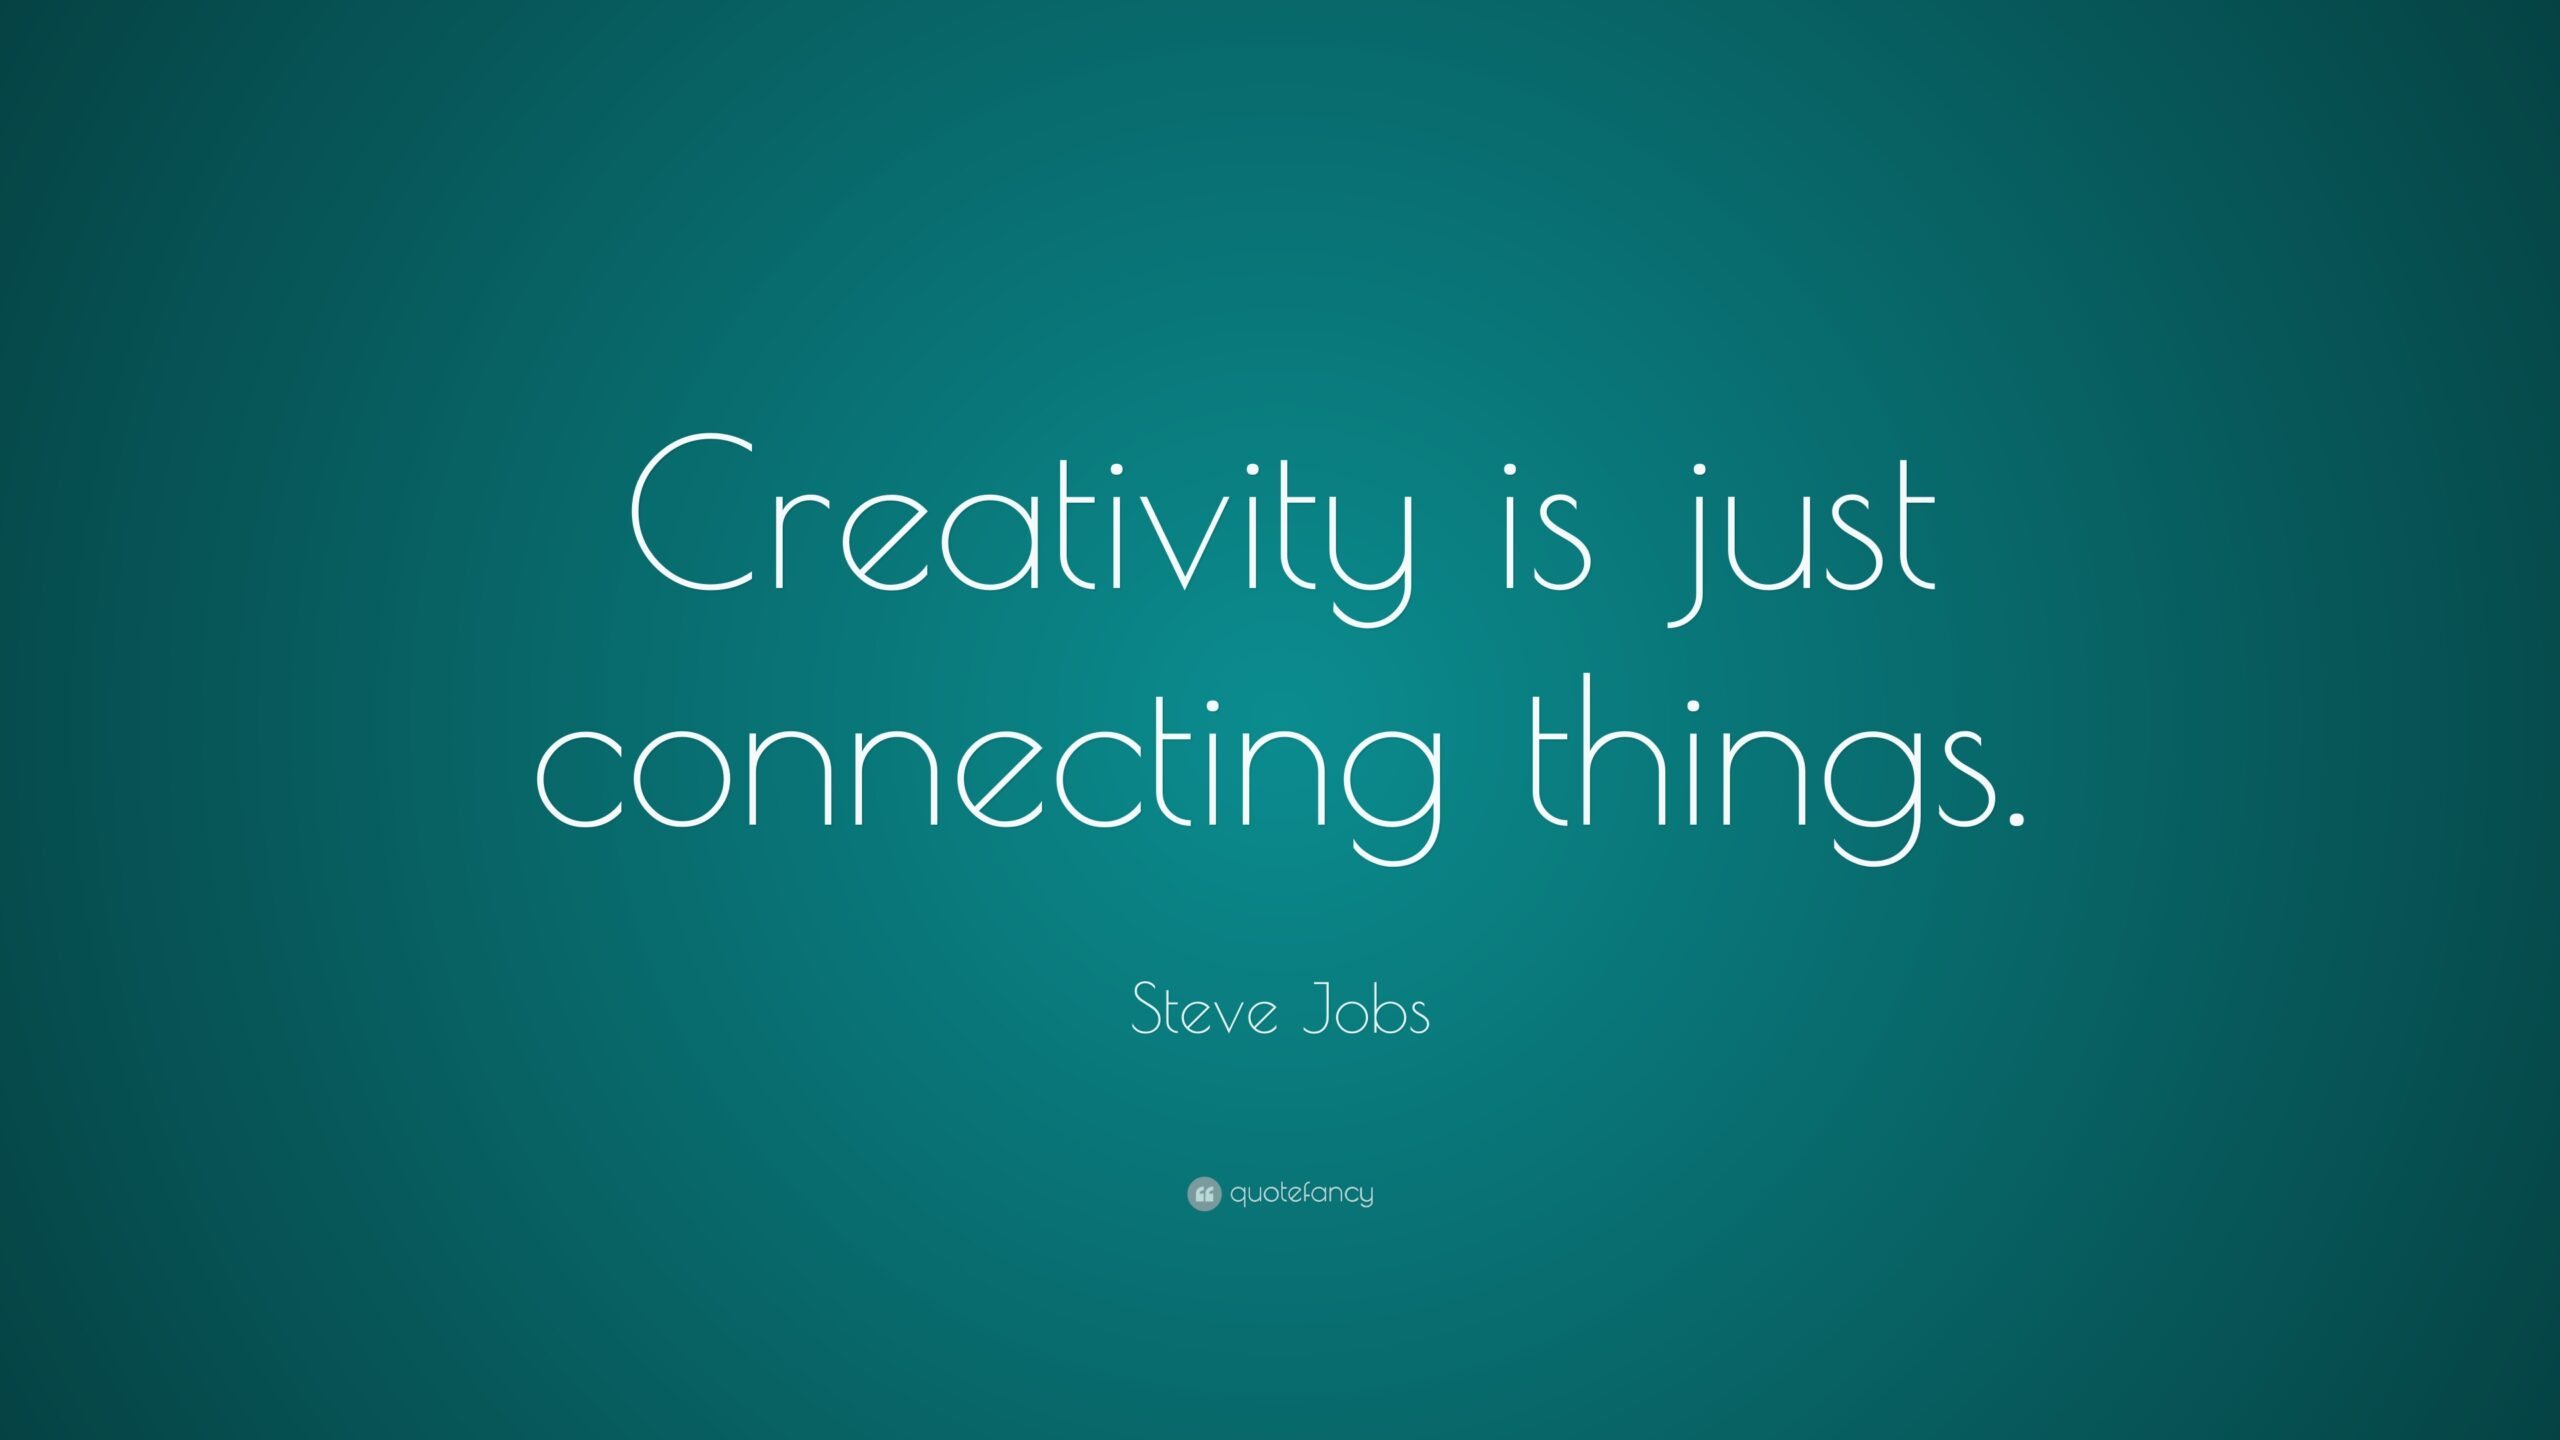 Creativity is Connecting Things